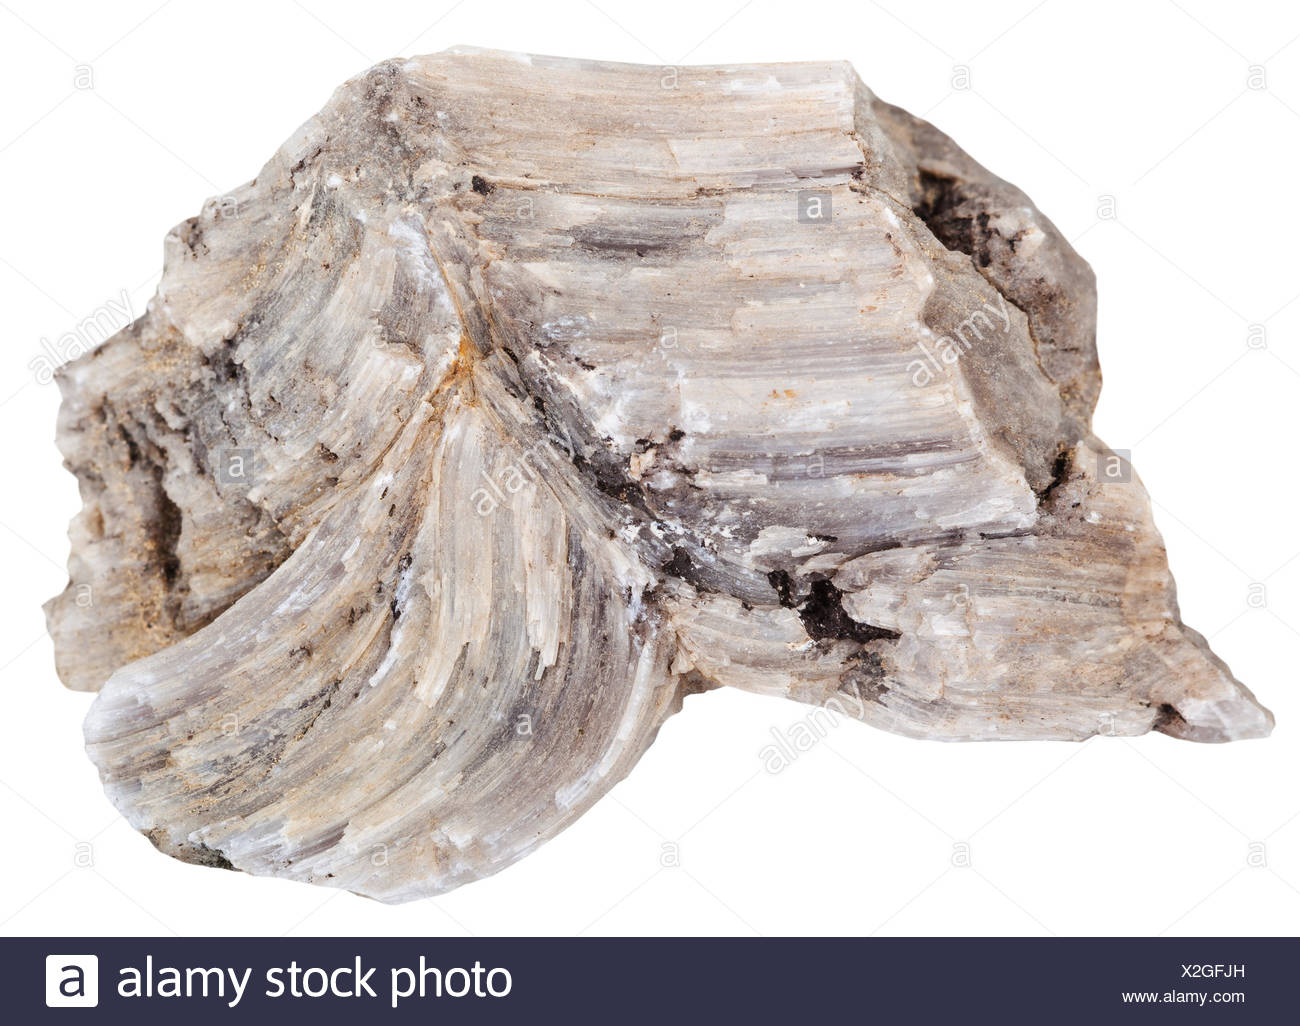 piece of raw Baryte (barite) rock isolated - Stock Image